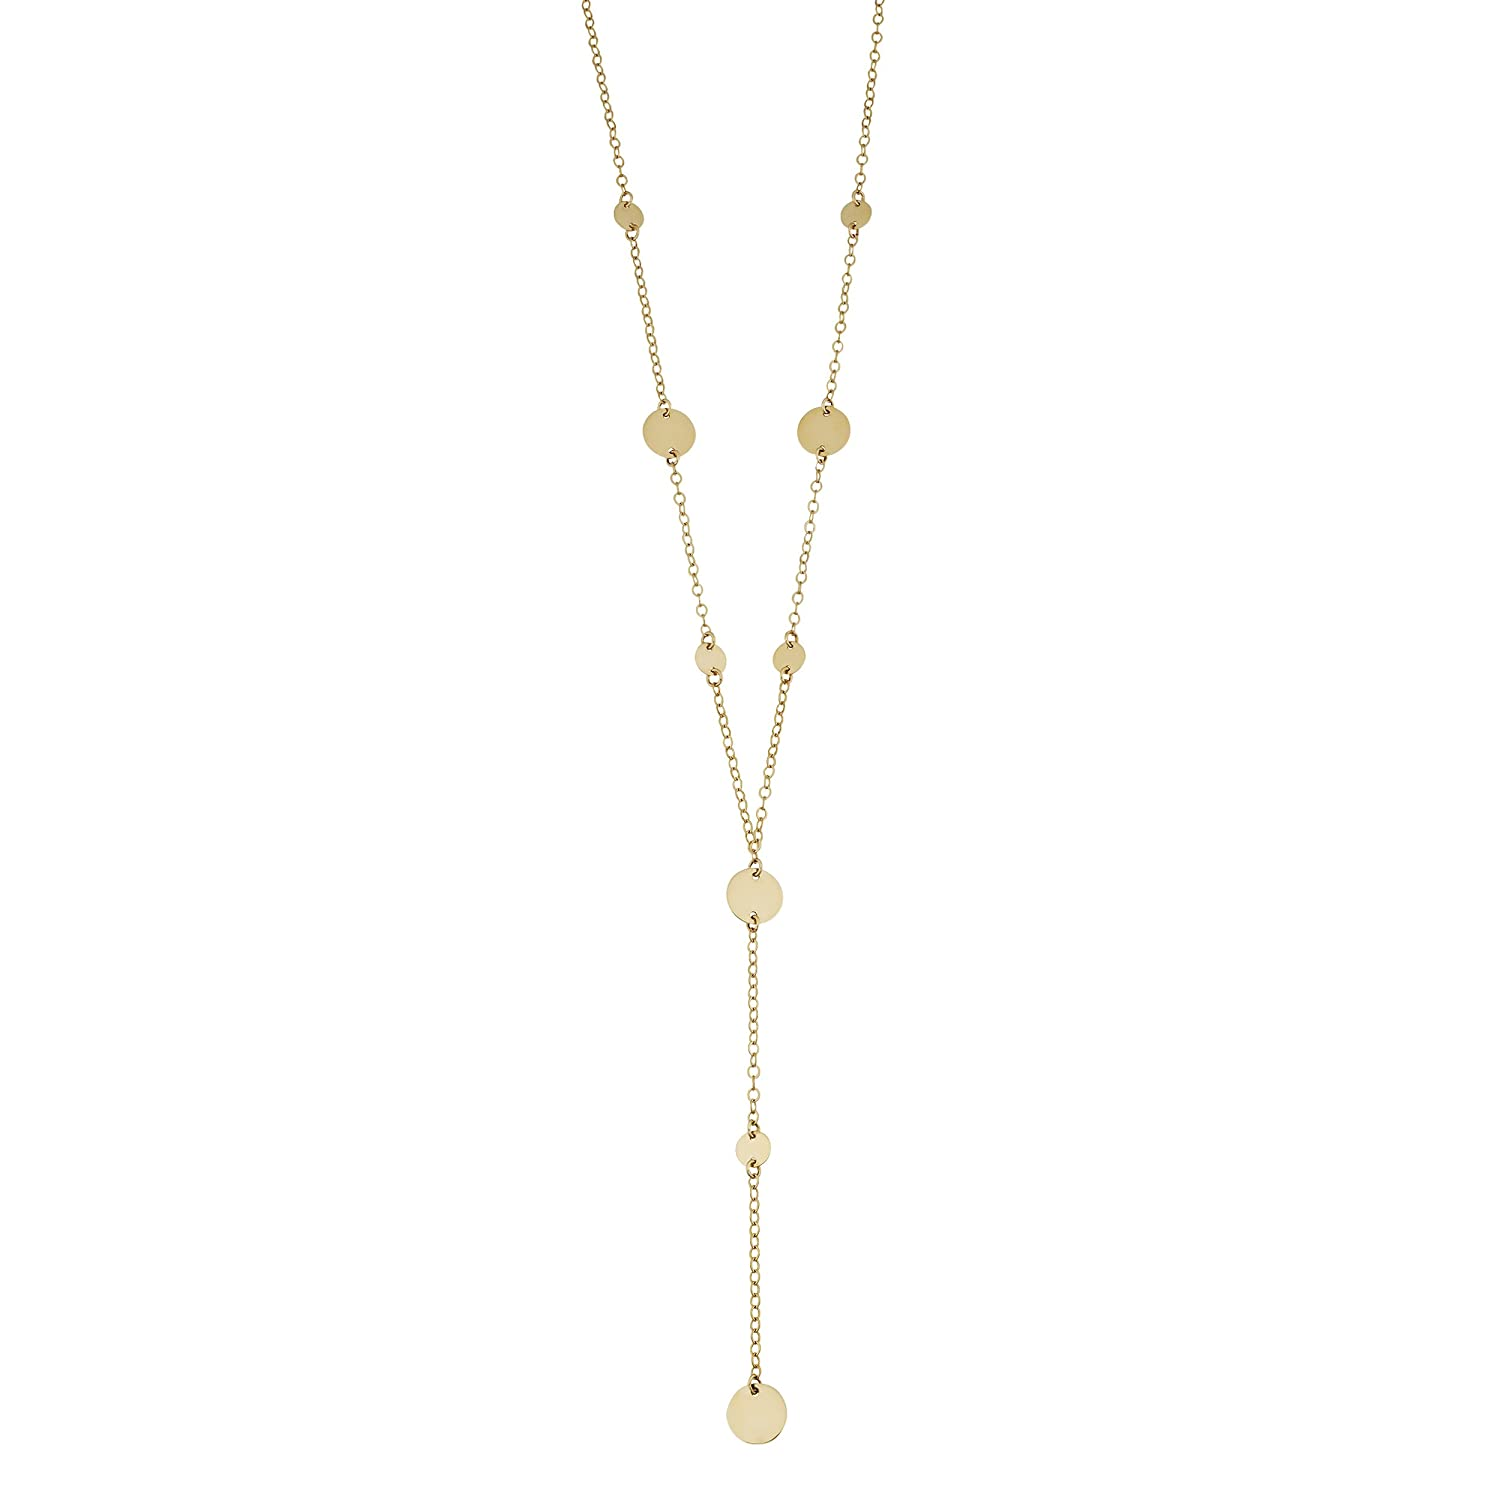 549e6302498b8 Kooljewelry 14k Yellow Gold Disc Station Lariat Necklace (18 inch)